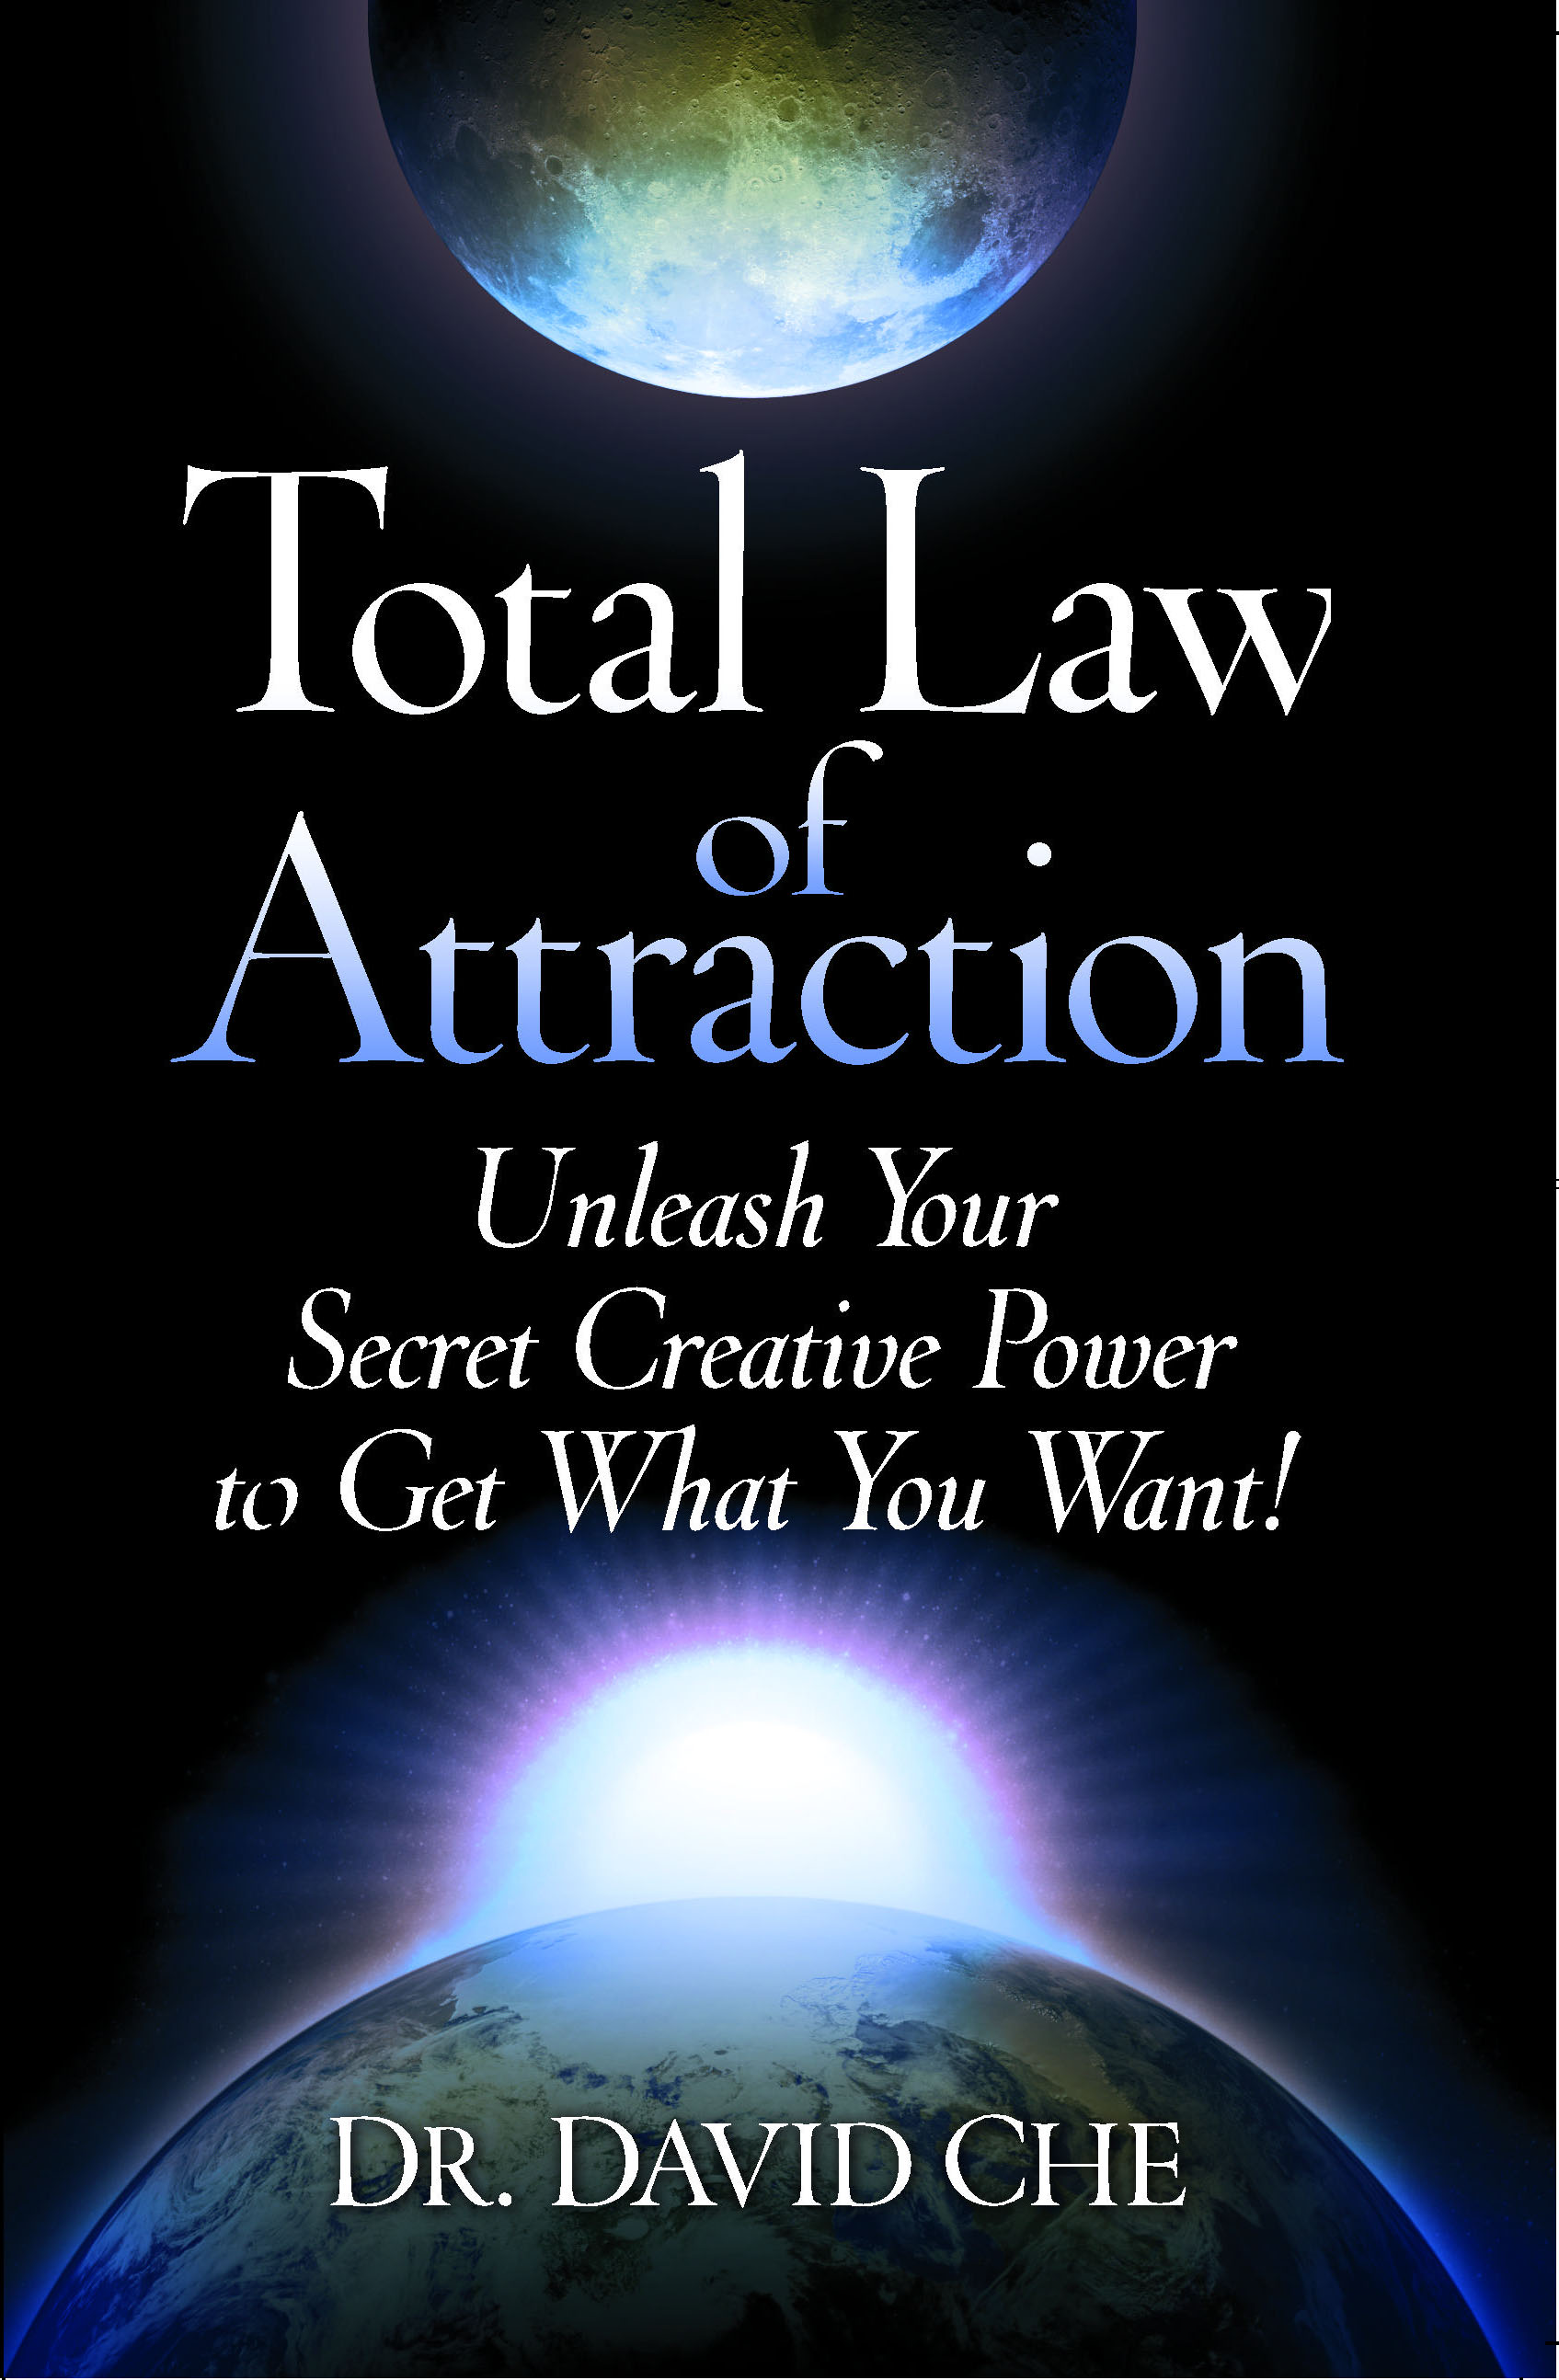 Book Cover Image (jpg): Total Law of Attraction